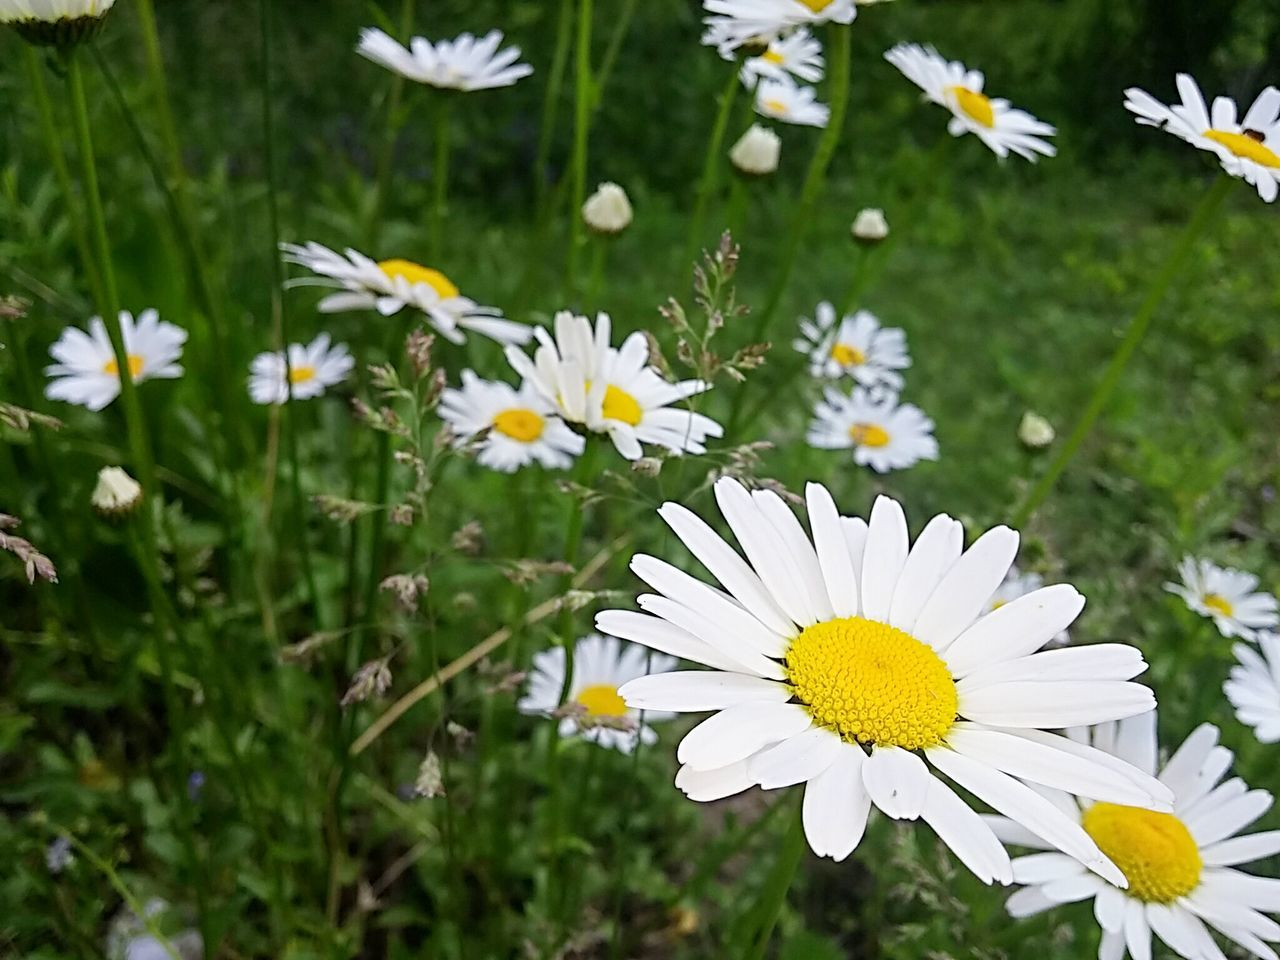 flower, nature, petal, growth, freshness, white color, beauty in nature, fragility, plant, blooming, field, flower head, day, outdoors, no people, grass, close-up, yellow